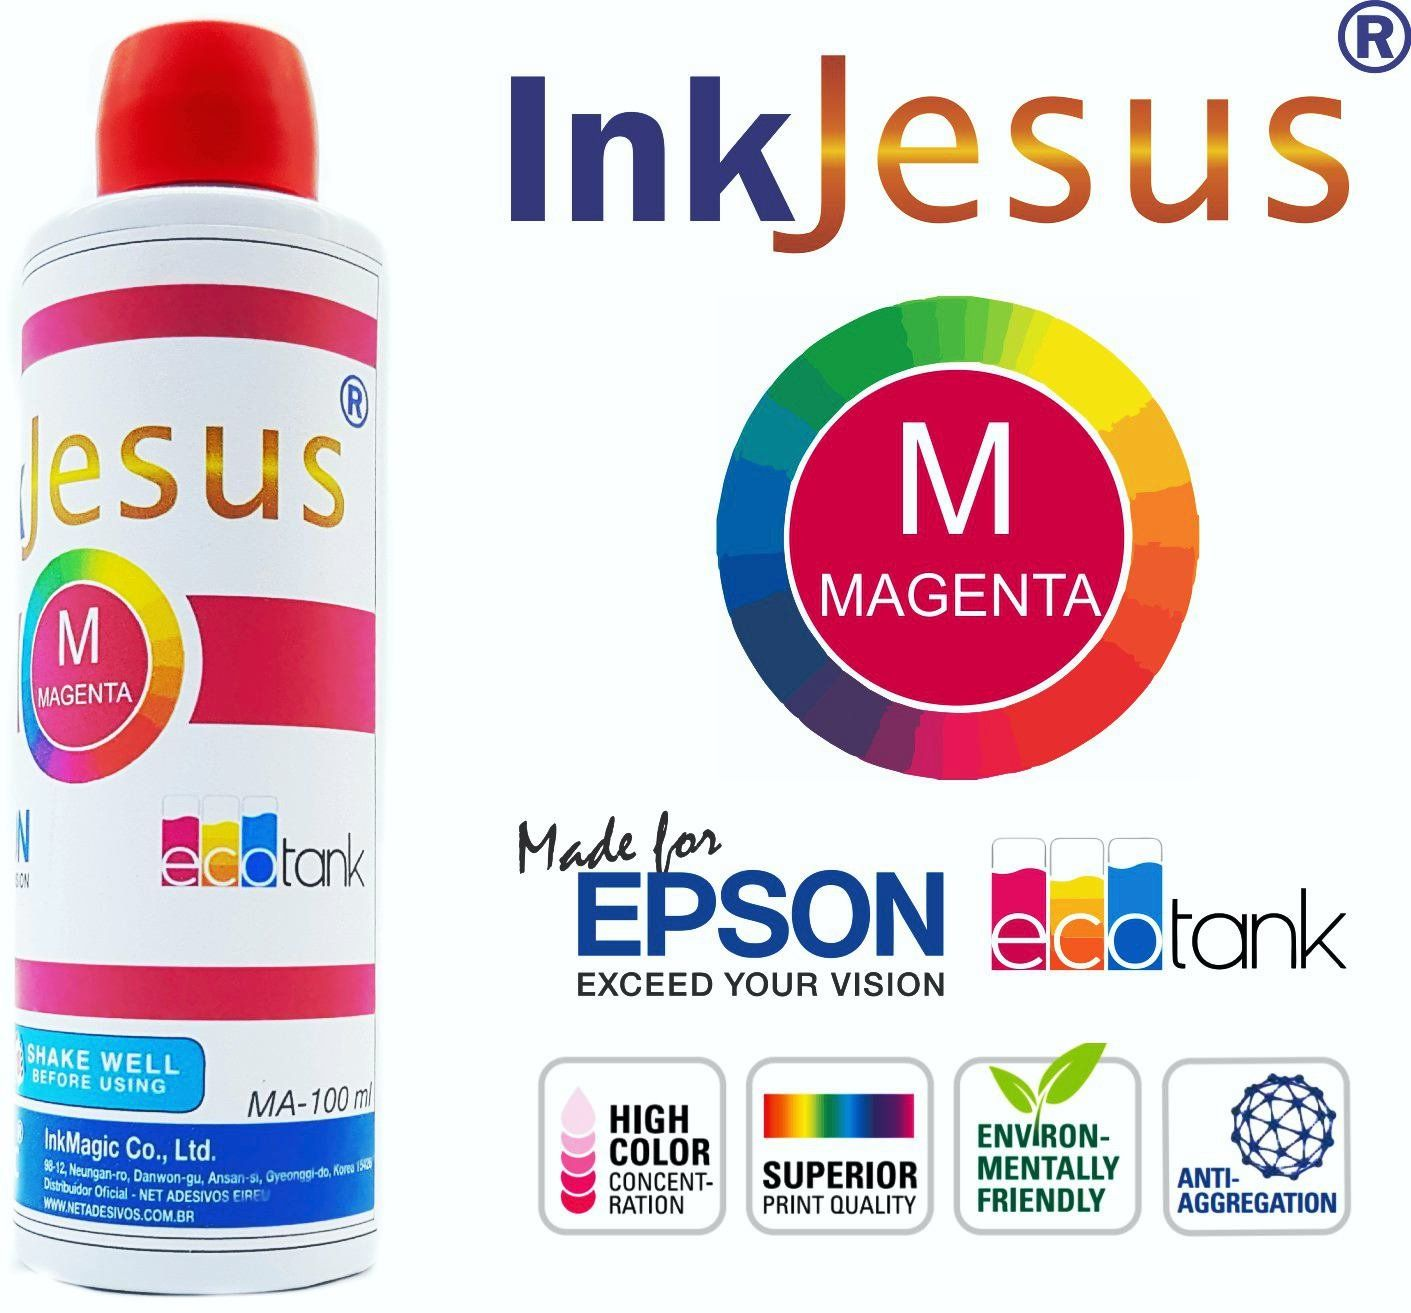 Tinta Sublimática InkJesus 400ml + 200 Papel Sublimático A4 + Icc